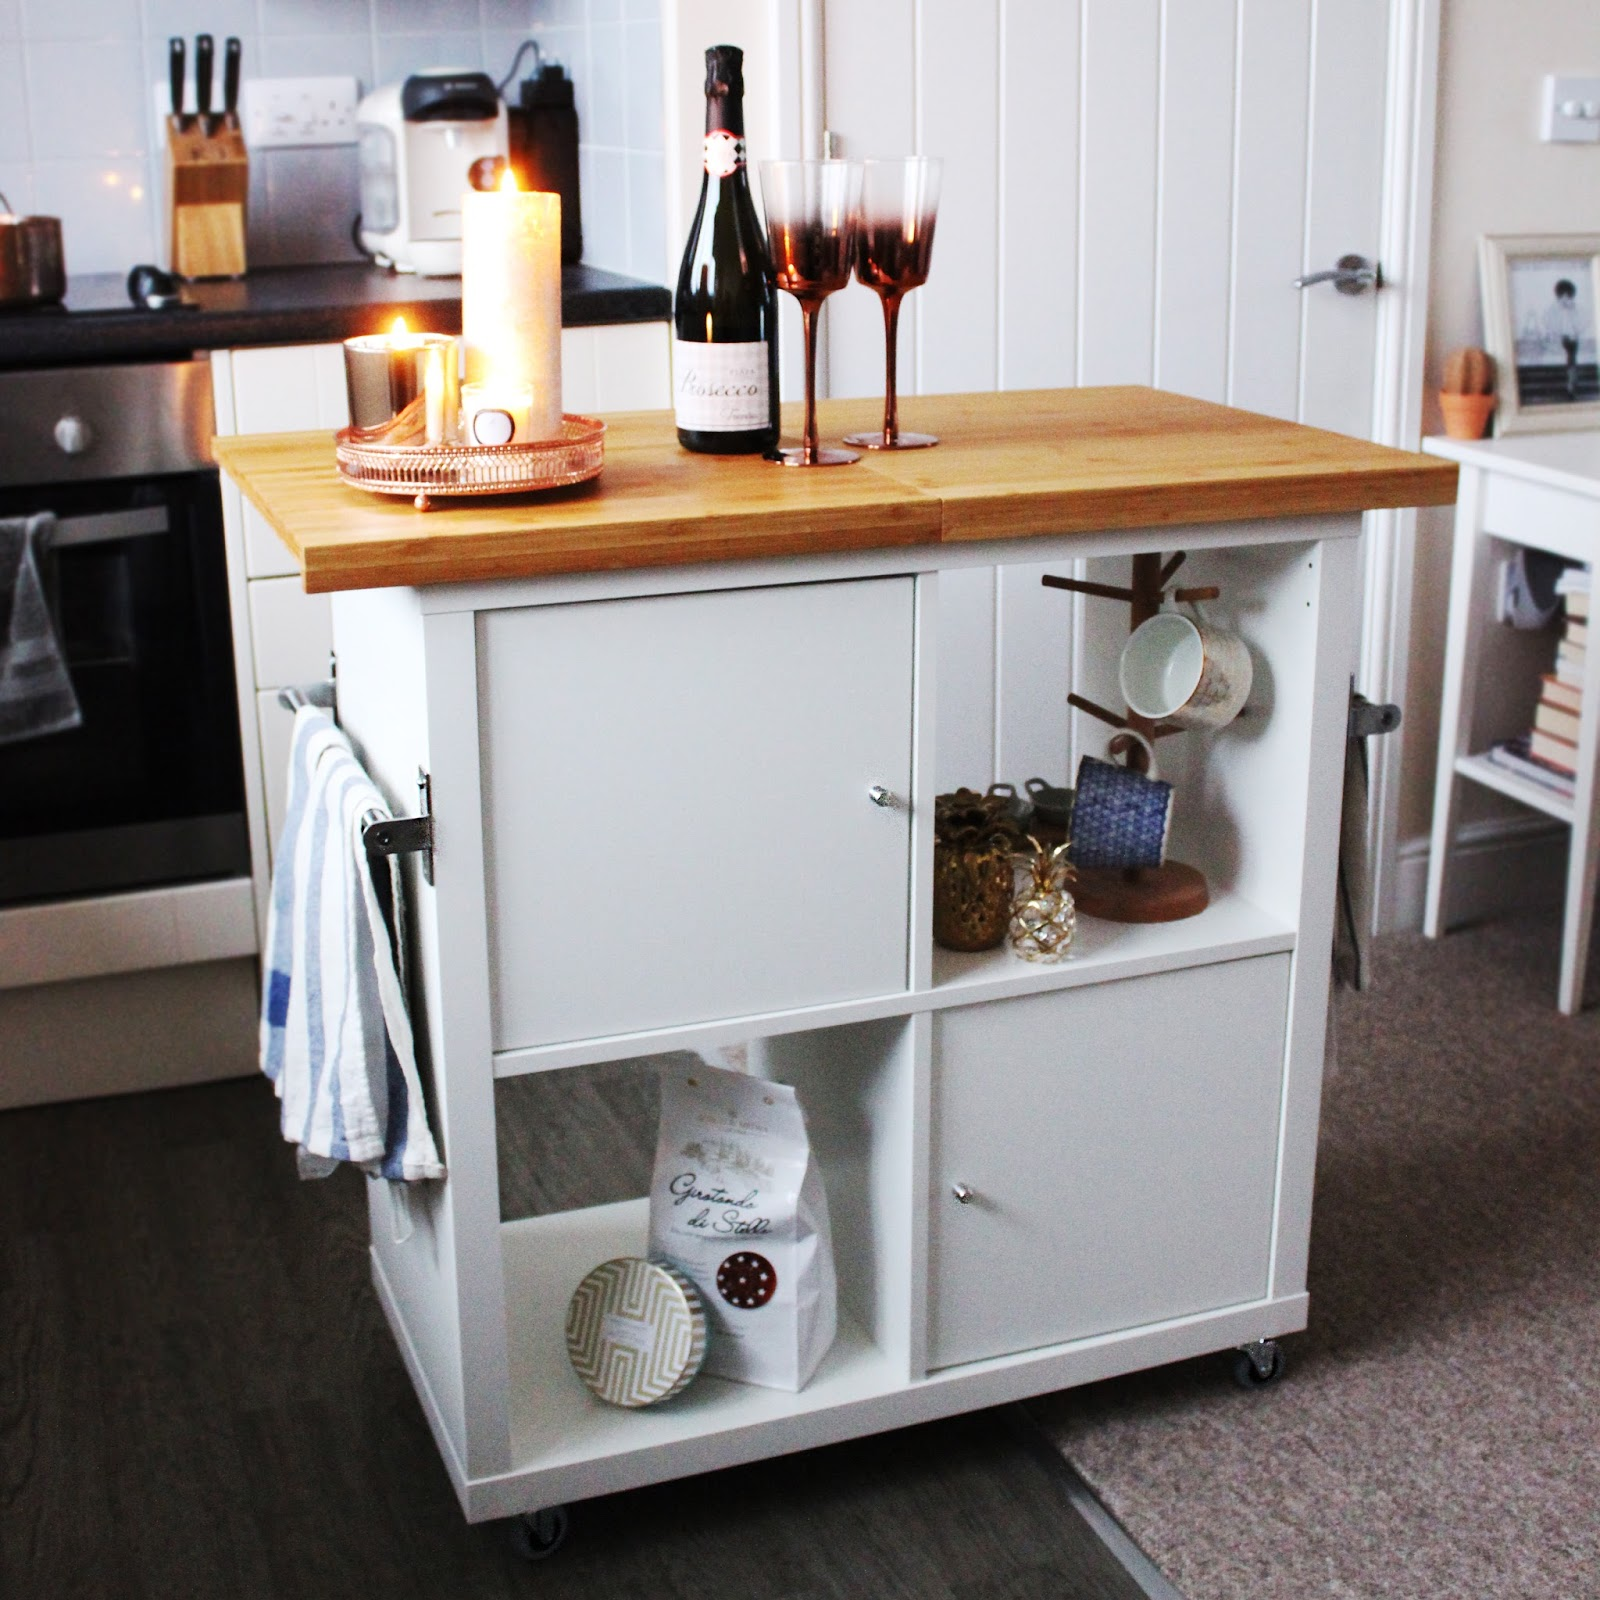 Ikea hackers is always coming up with great ideas you have to come on over and see what they did to a finnvard deska fabulous alternative kitchen island